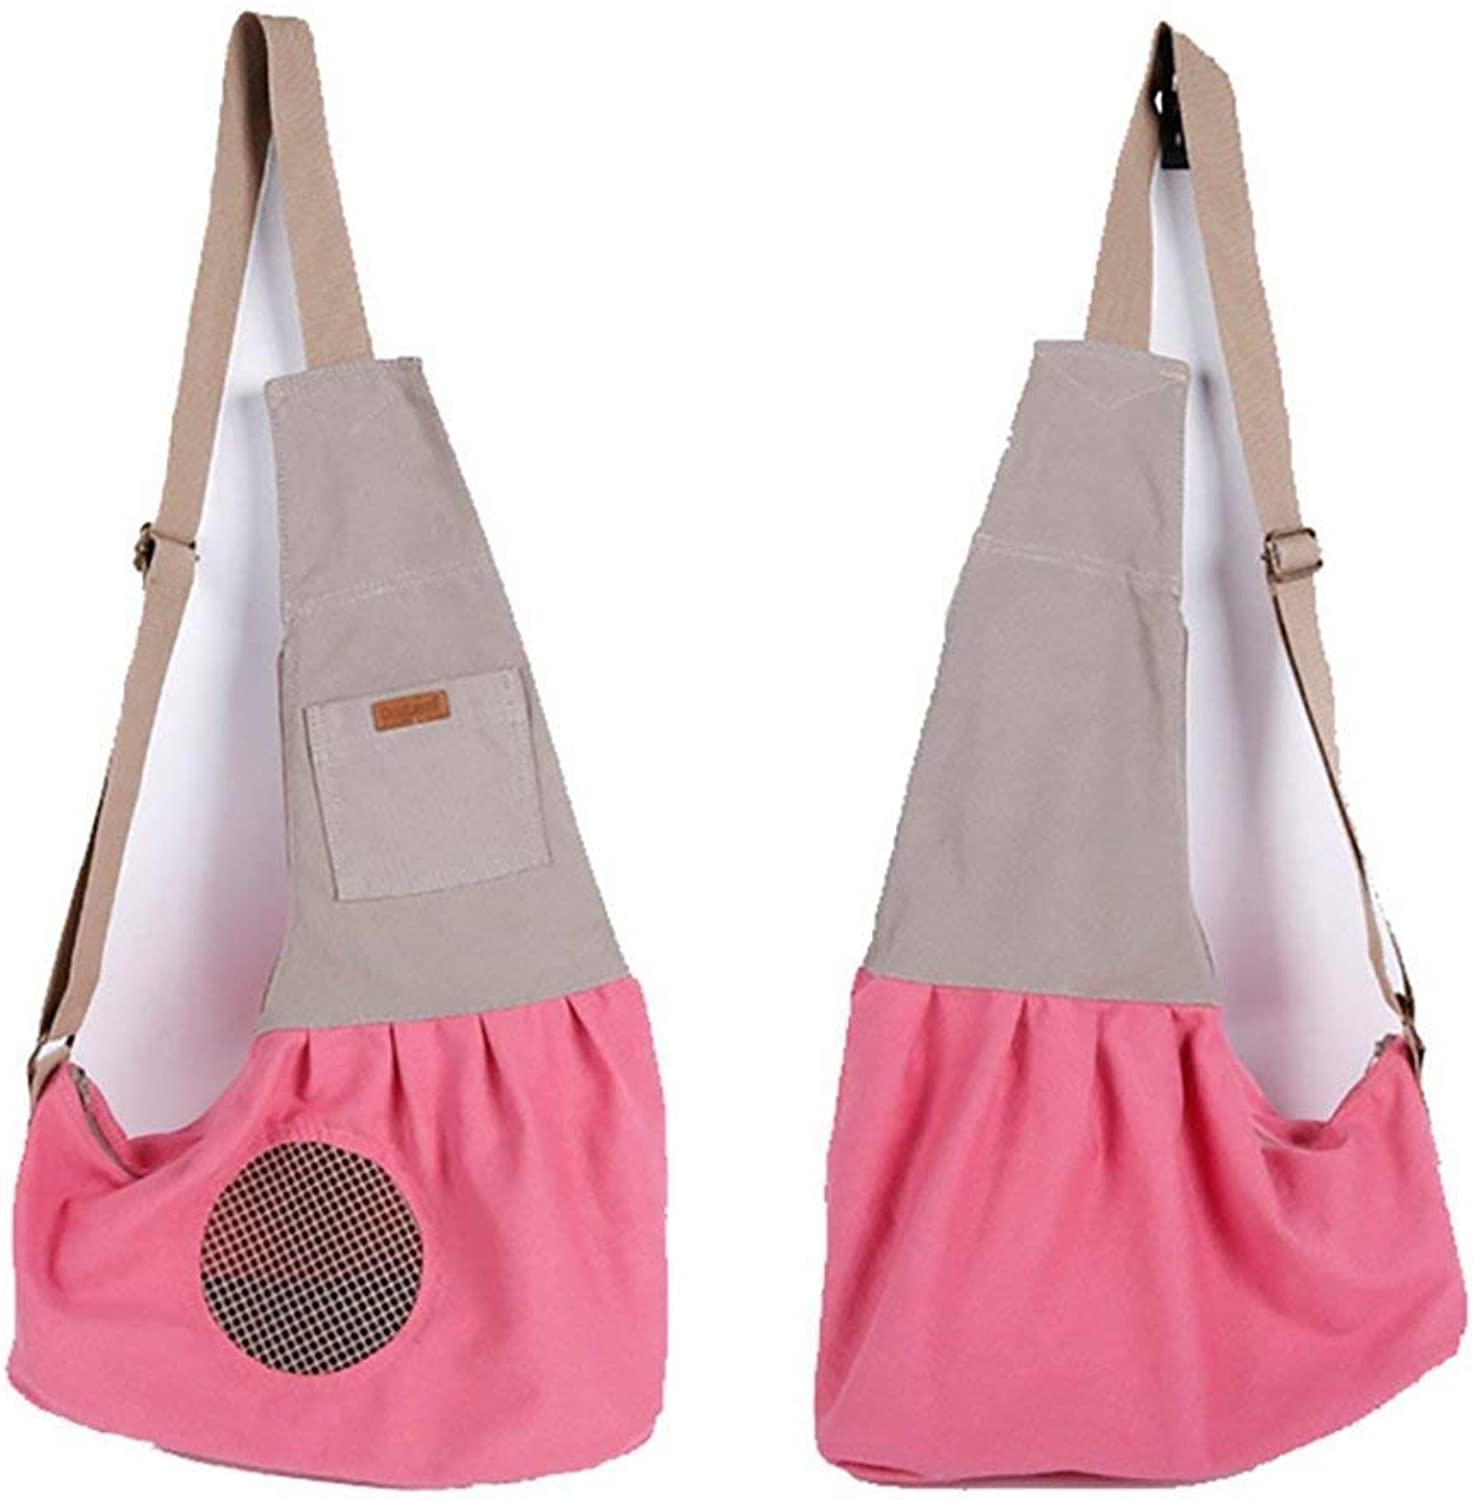 IF.HLMF Pet Cat Travel Carrier Bag, Comfort Portable Foldable for Small Dogs,Cats and Puppies Small Animal,Pink